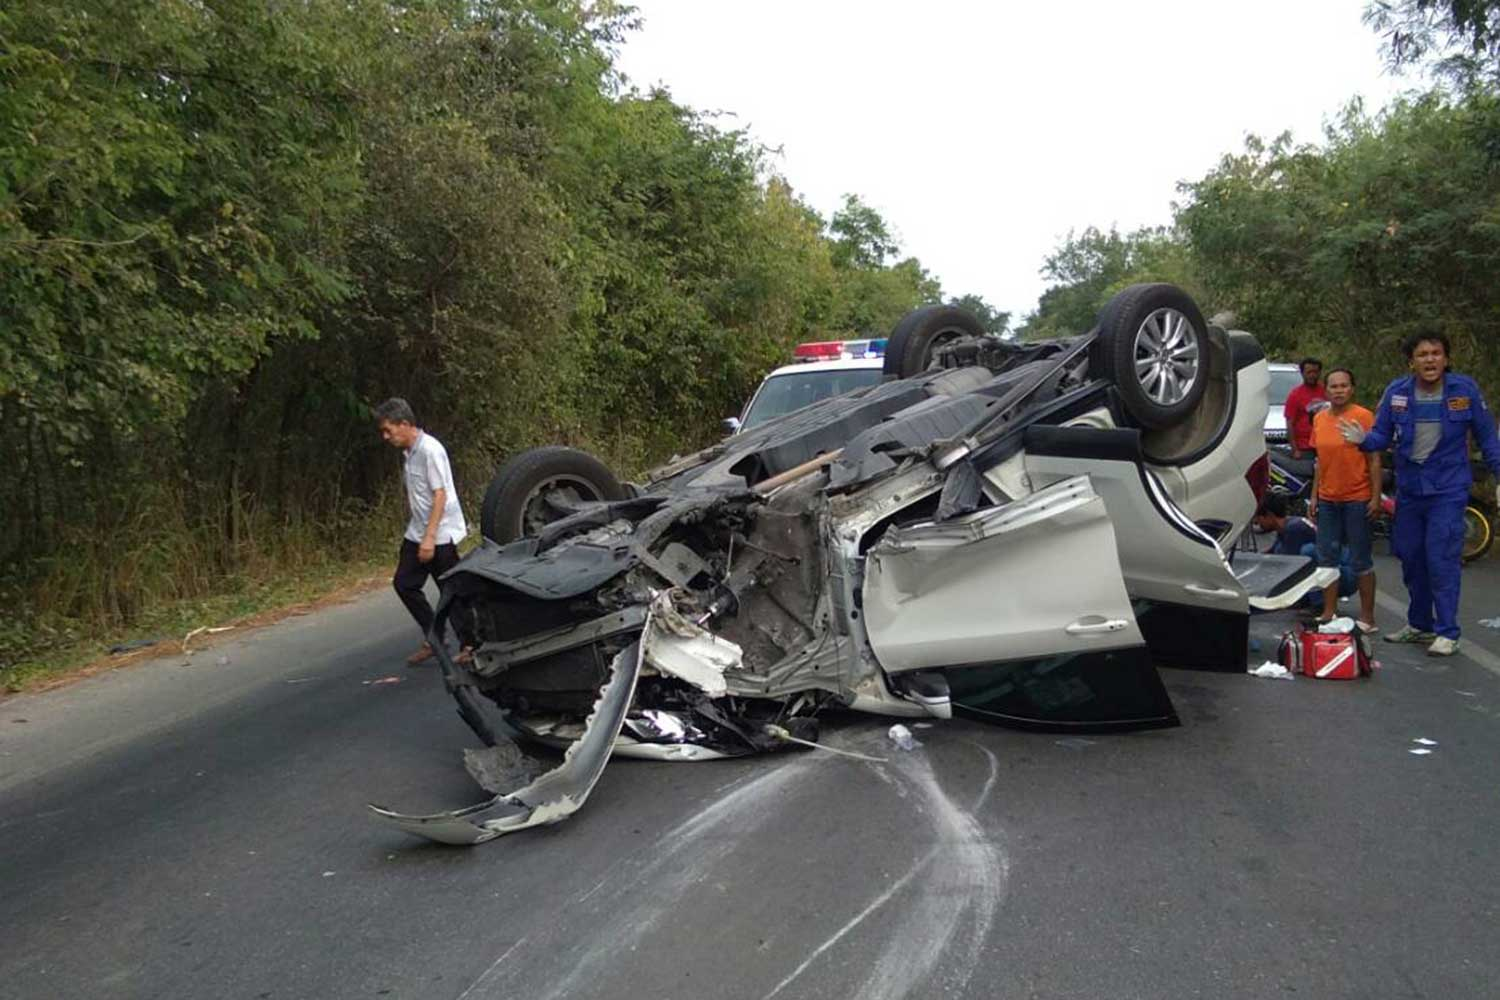 This CRV overturned on Ratchaburi-Chat Pawai Road in Muang district of Ratchaburi province following a crash with a Volvo on Jan 1. One person was killed and 12 others, including children, hurt. (Photo by Saichon Srinuanchan)